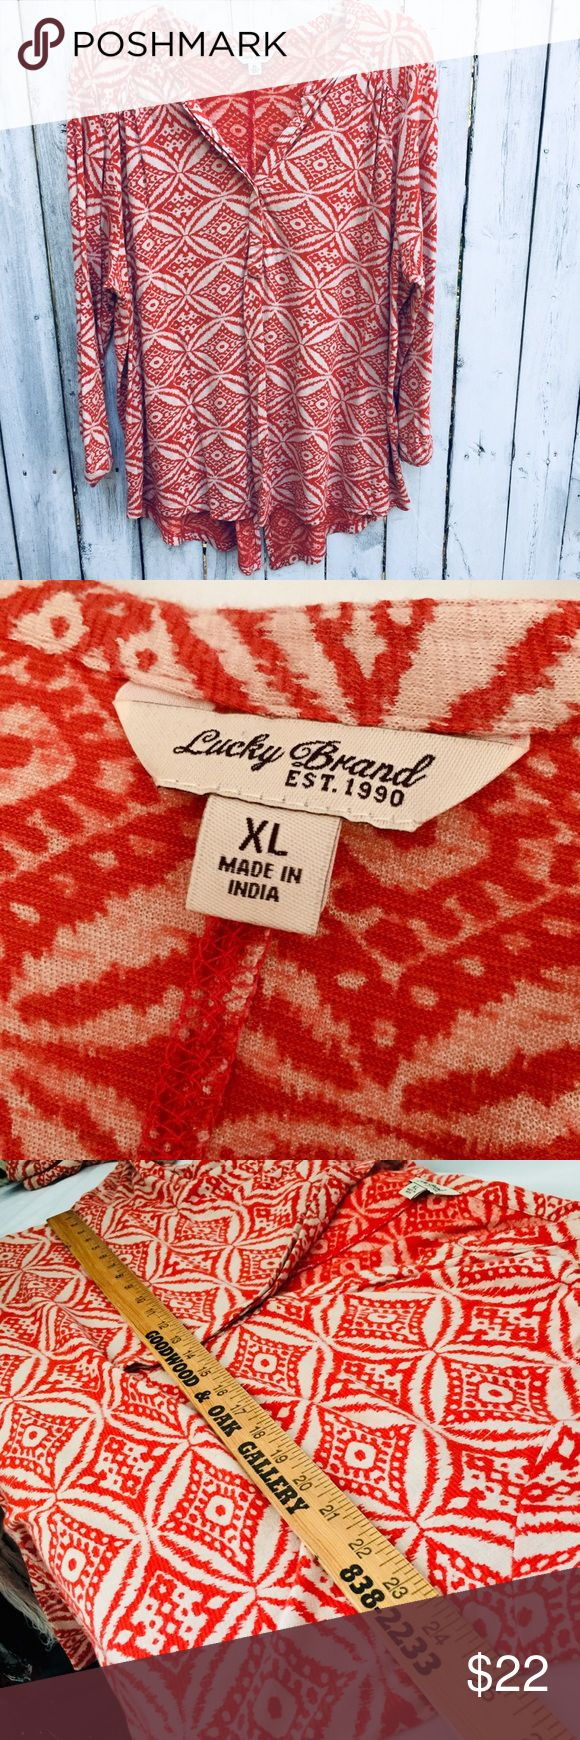 Lucky brand red tunic top Xl Lucky brand tunic top extra large red print excellent condition Tops Tunics